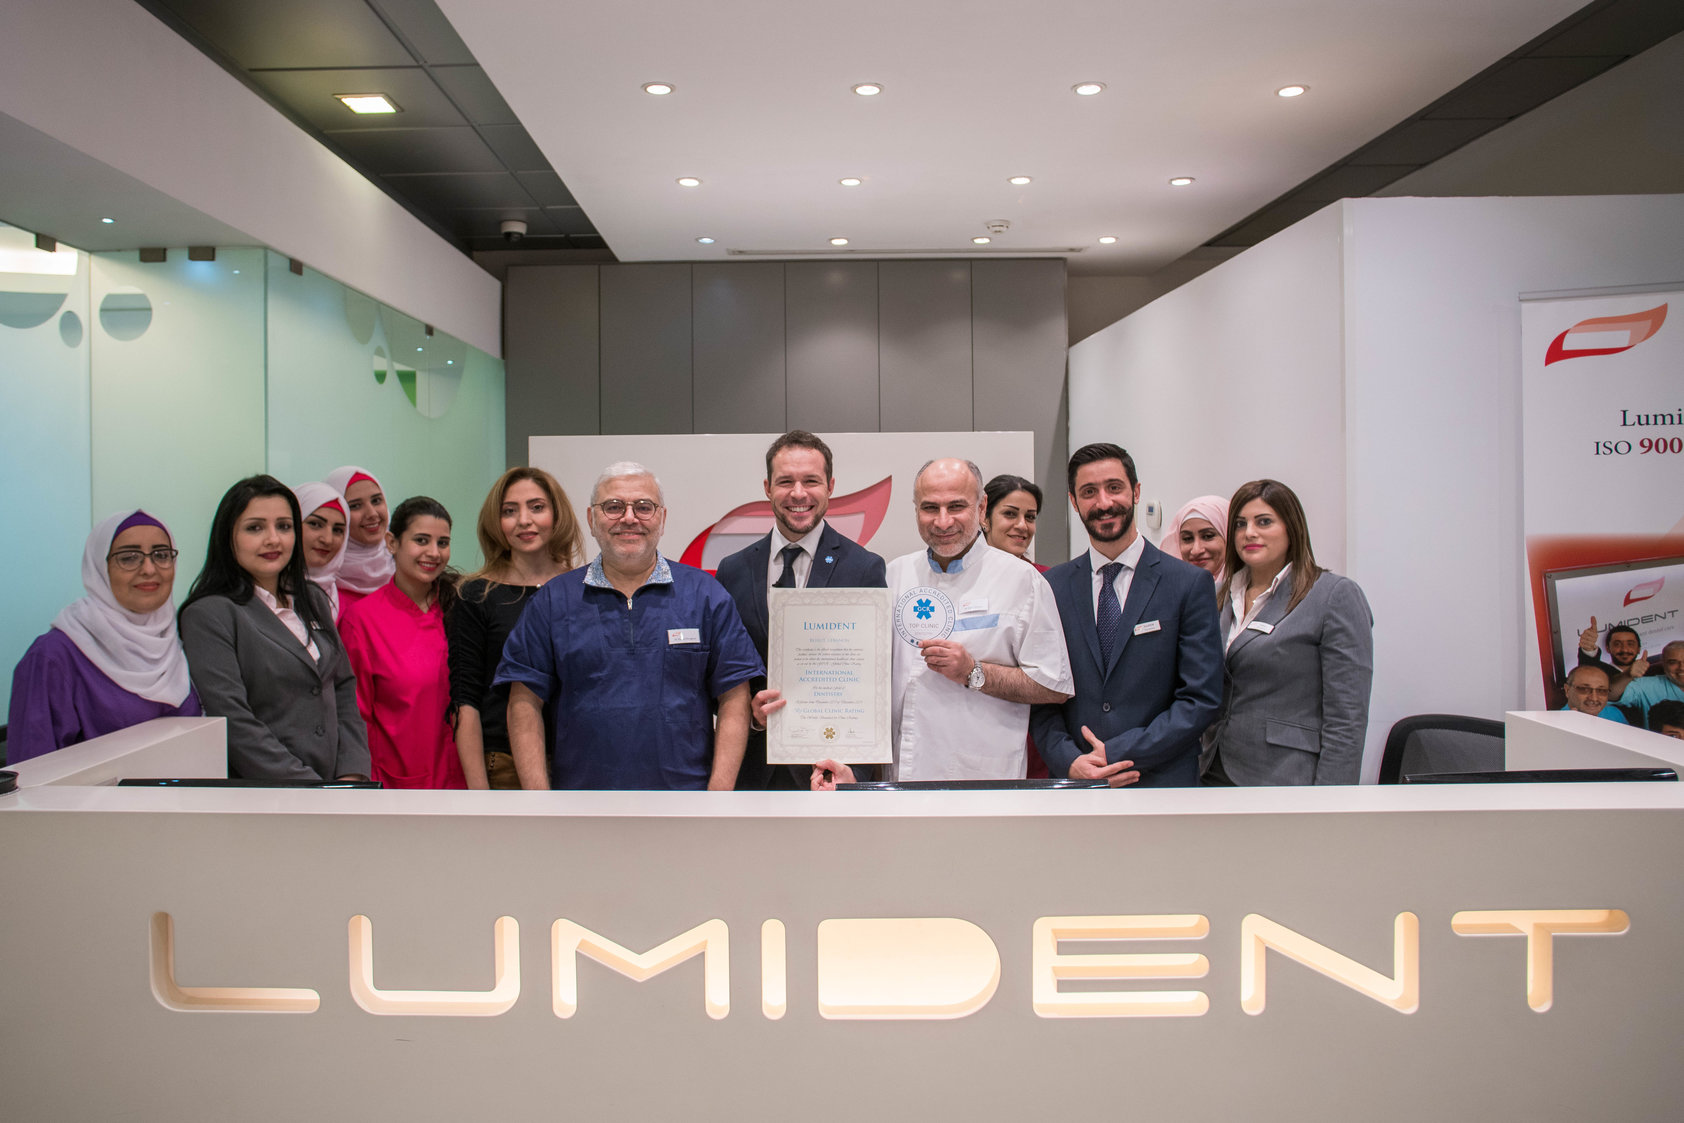 Clinic team at Lumident